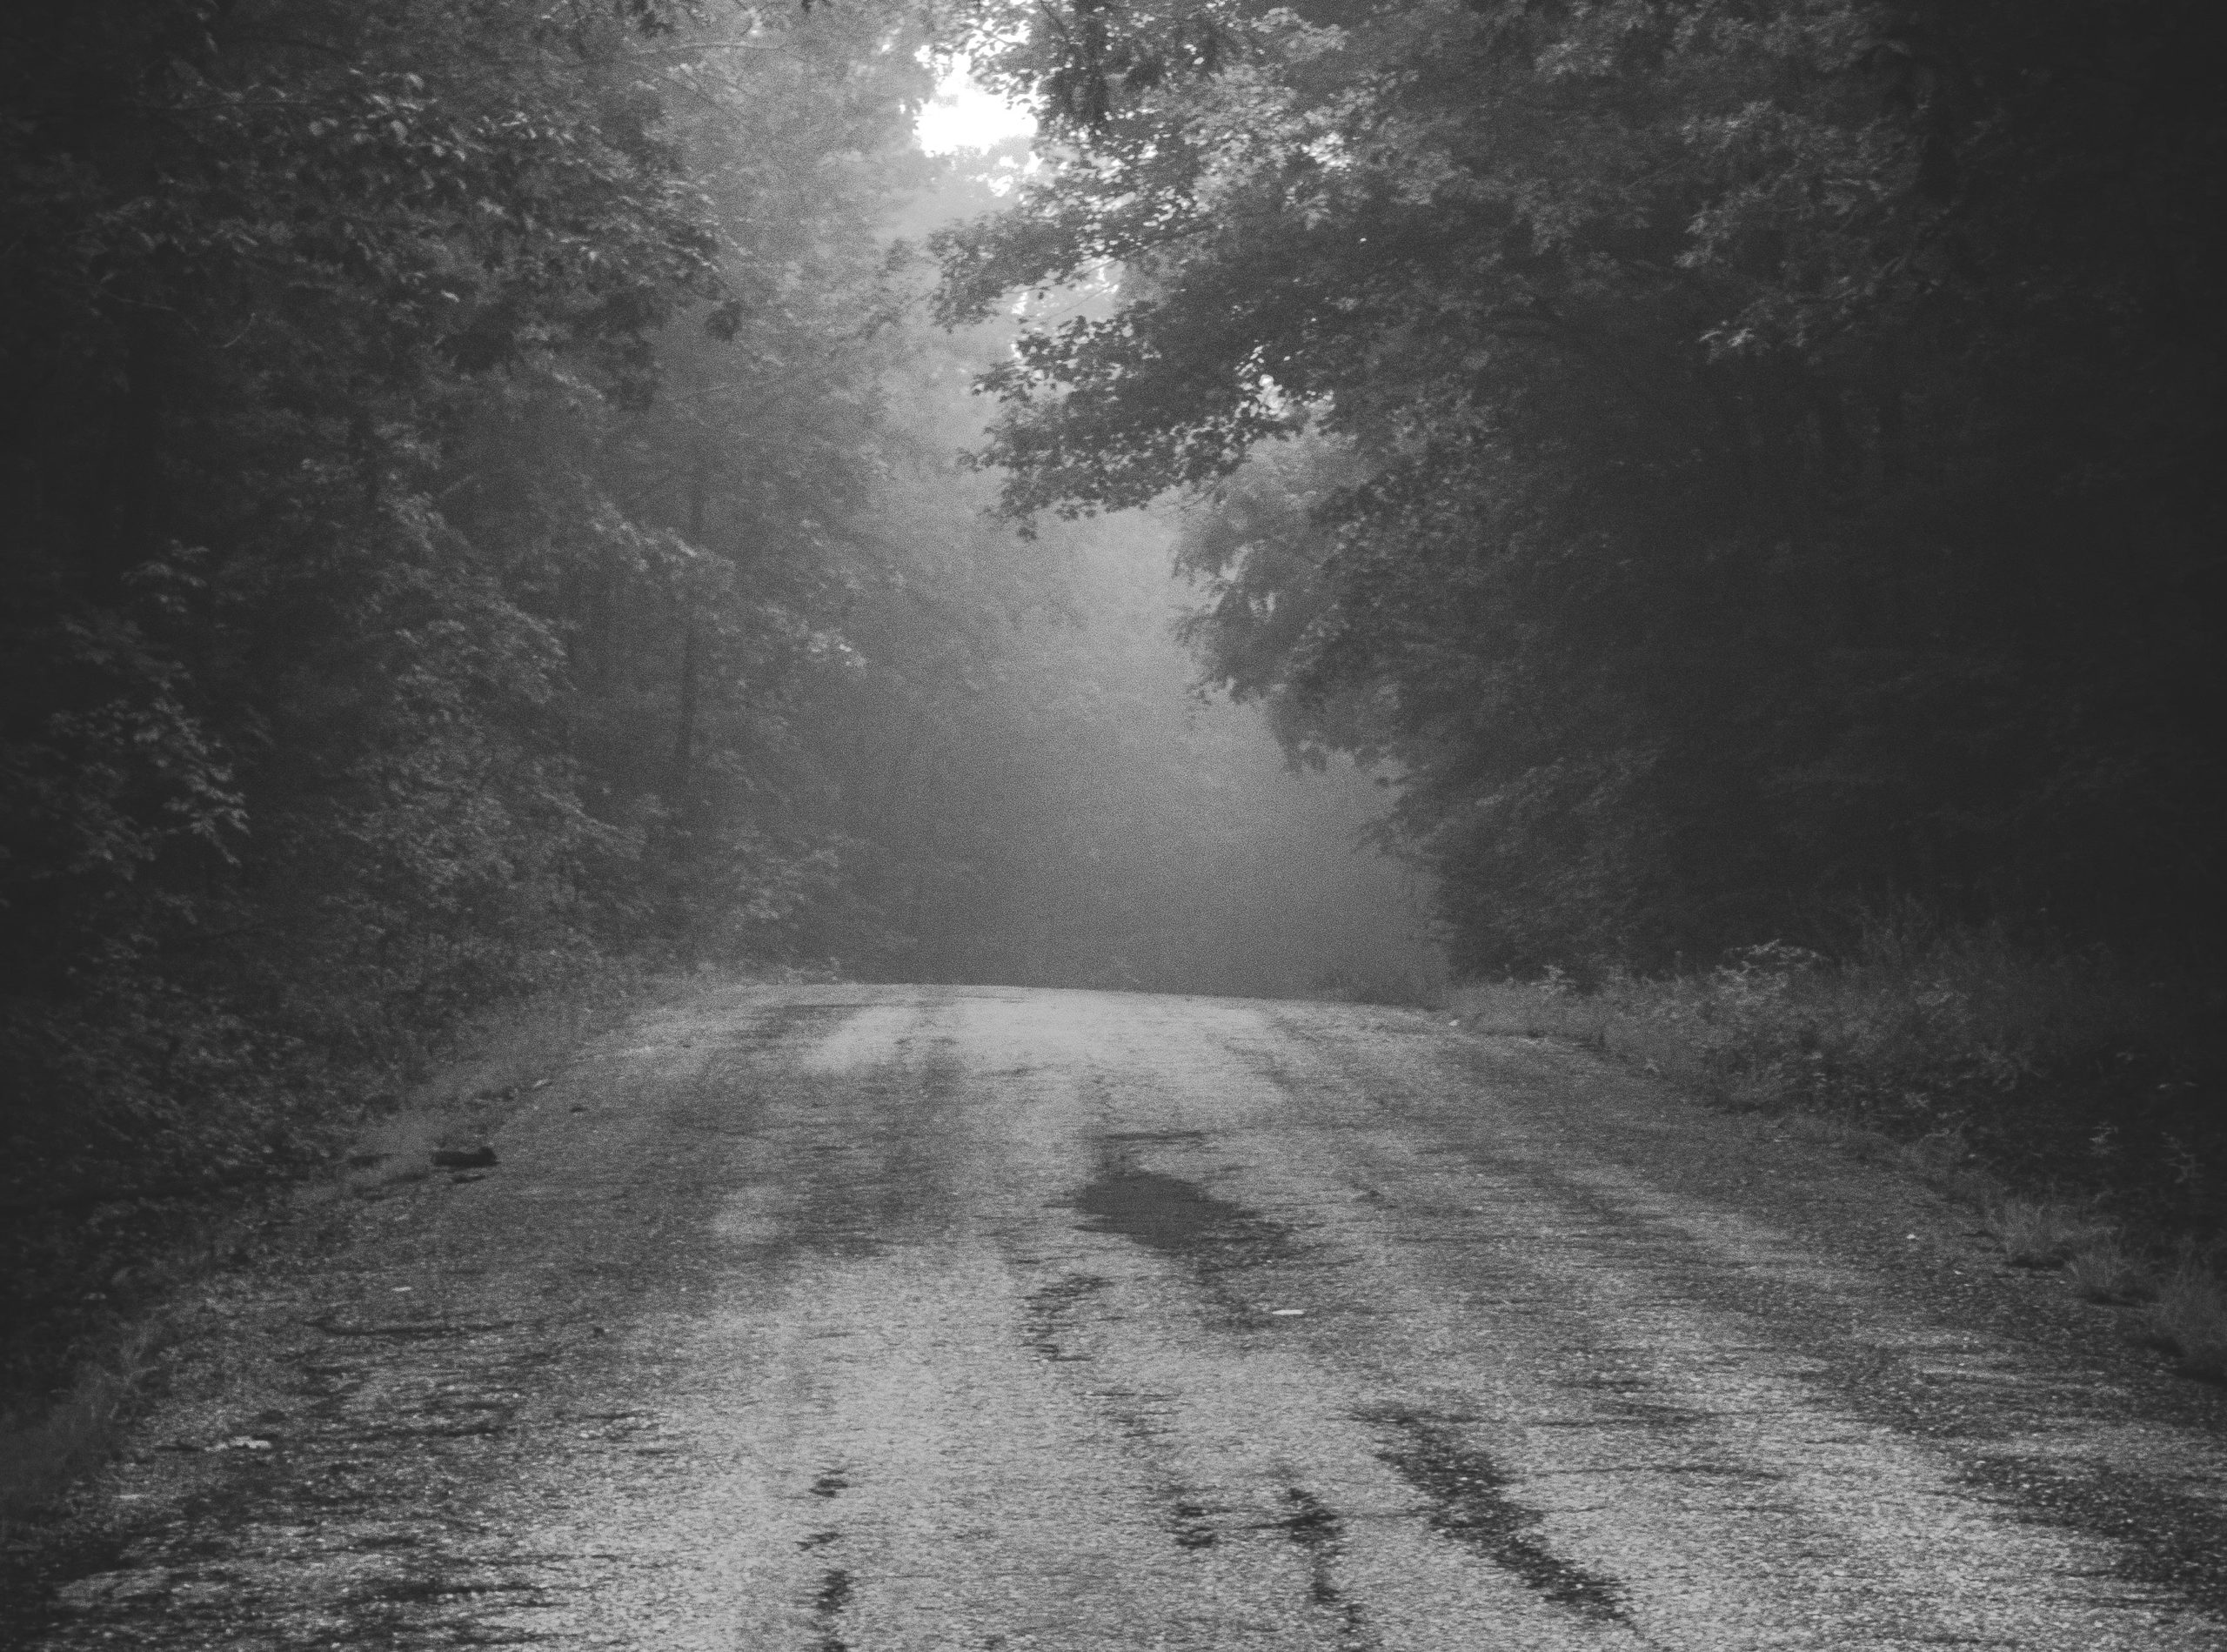 a black and white photo of a bare road